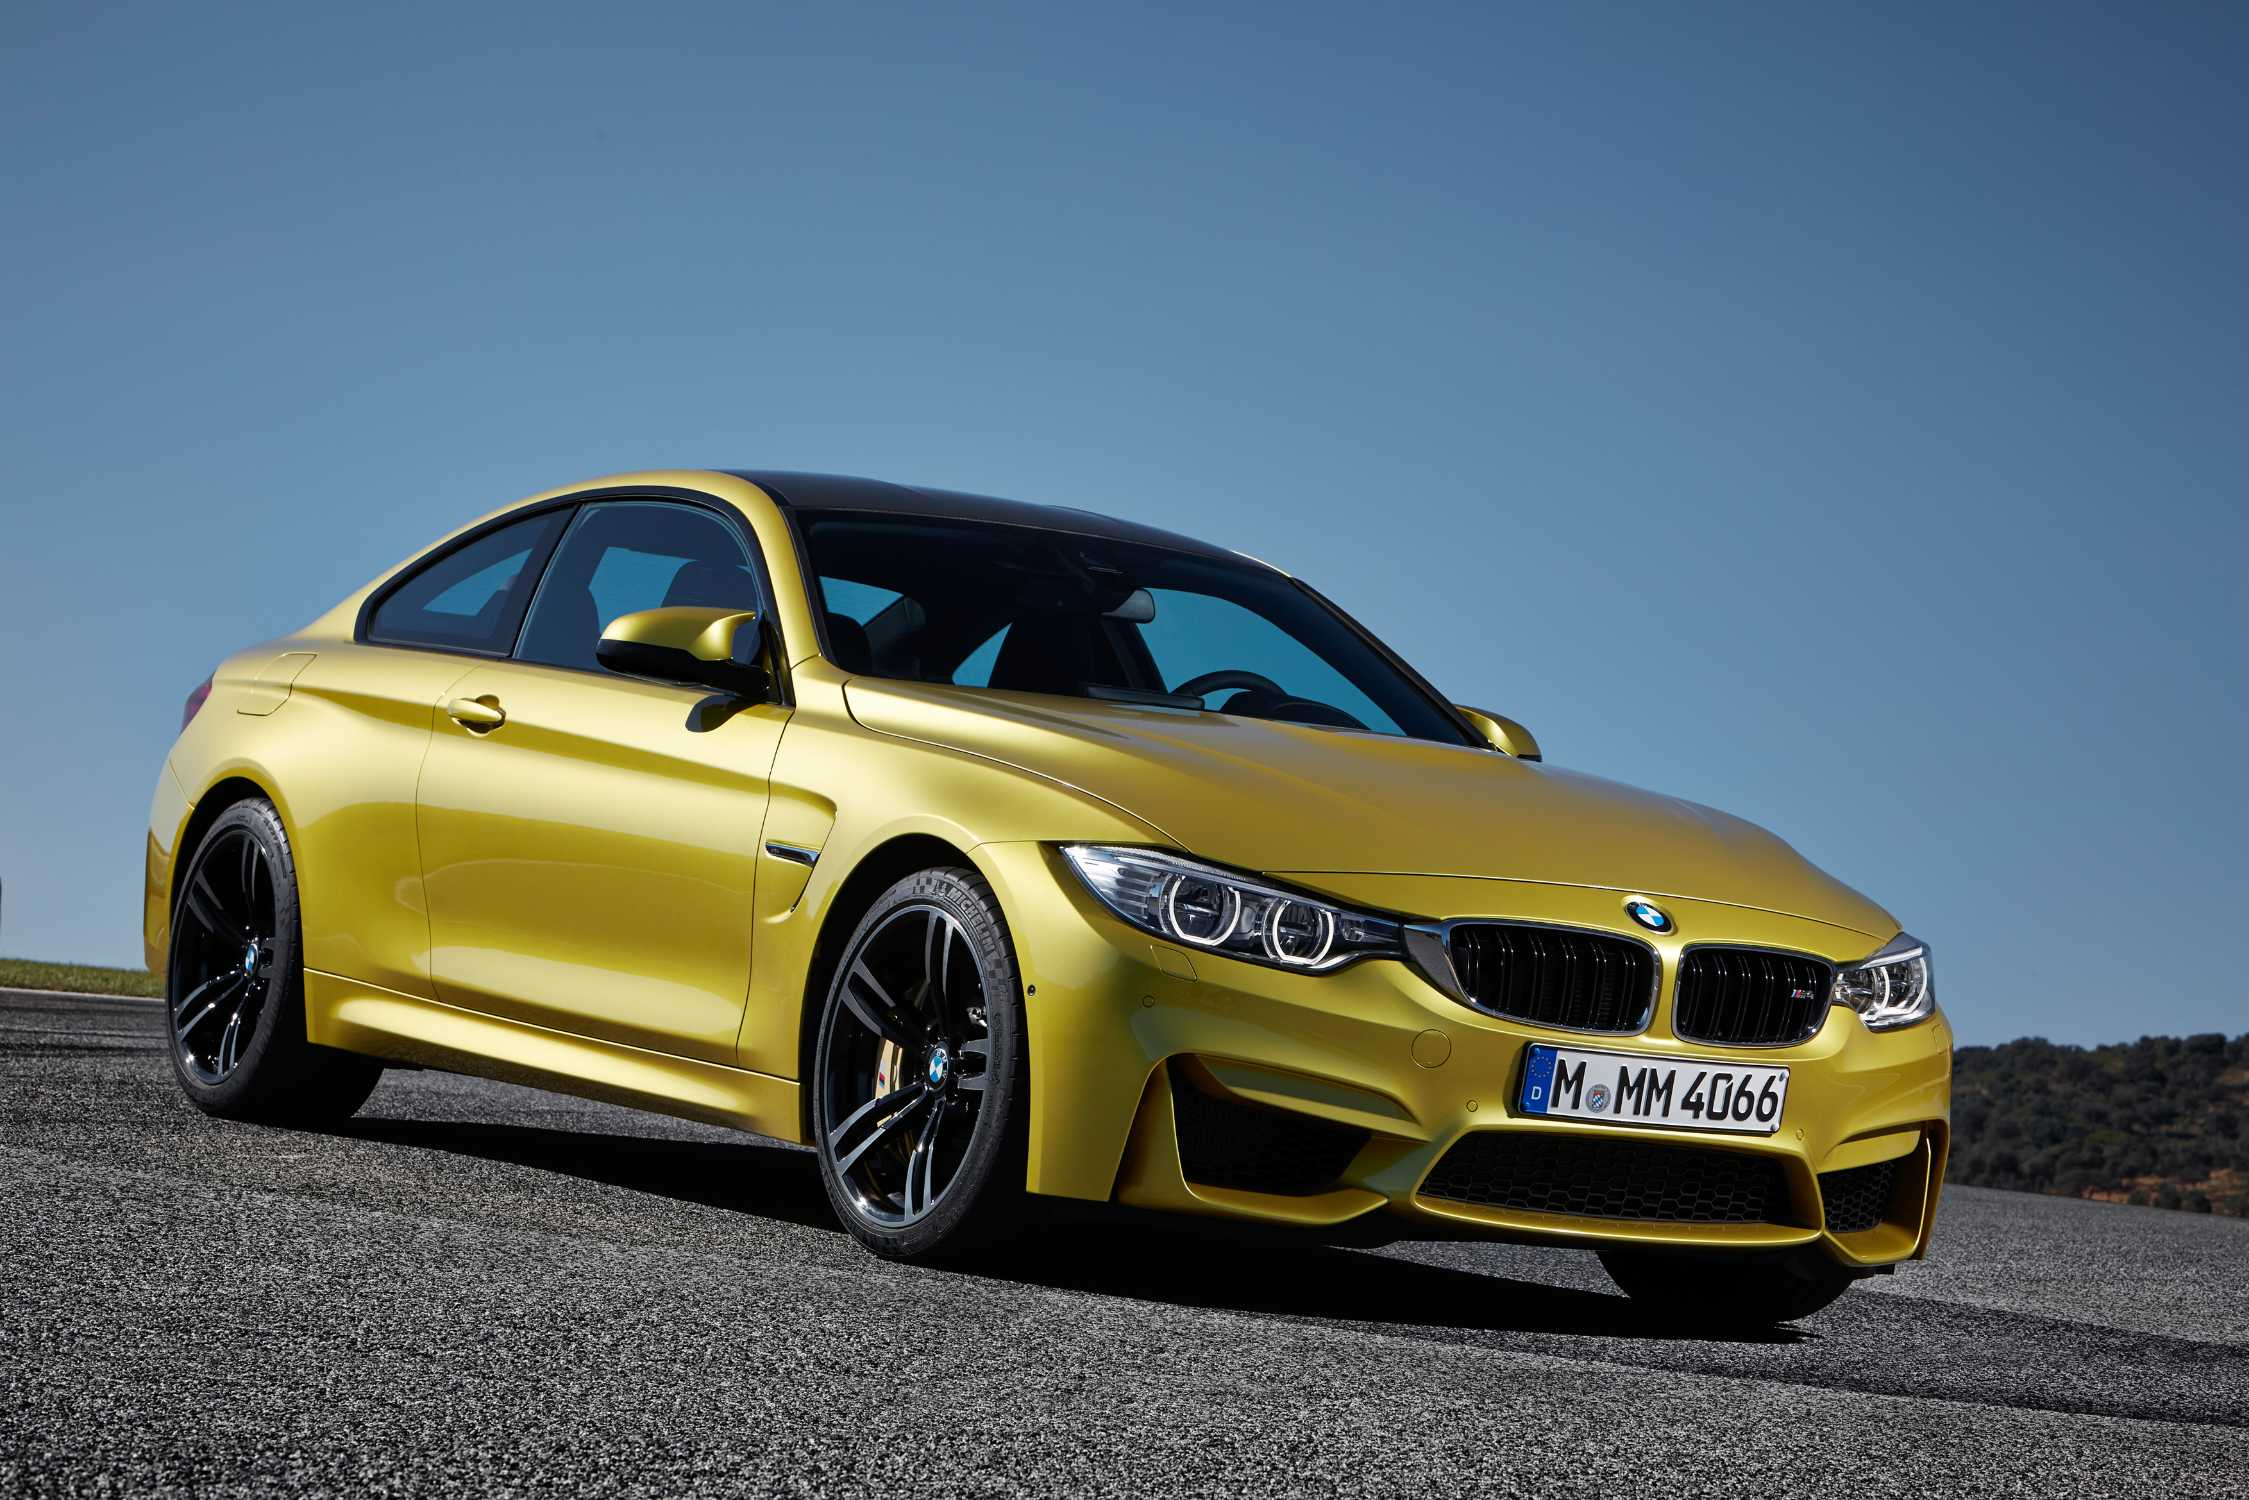 The All New Bmw M4 Coupé Austin Yellow Metallic 19 M Light Alloy Wheels Double Spoke Style 437 M Jet Black Forged And Polished M Carbon Ceramic Brake Bmw Ag 12 2013